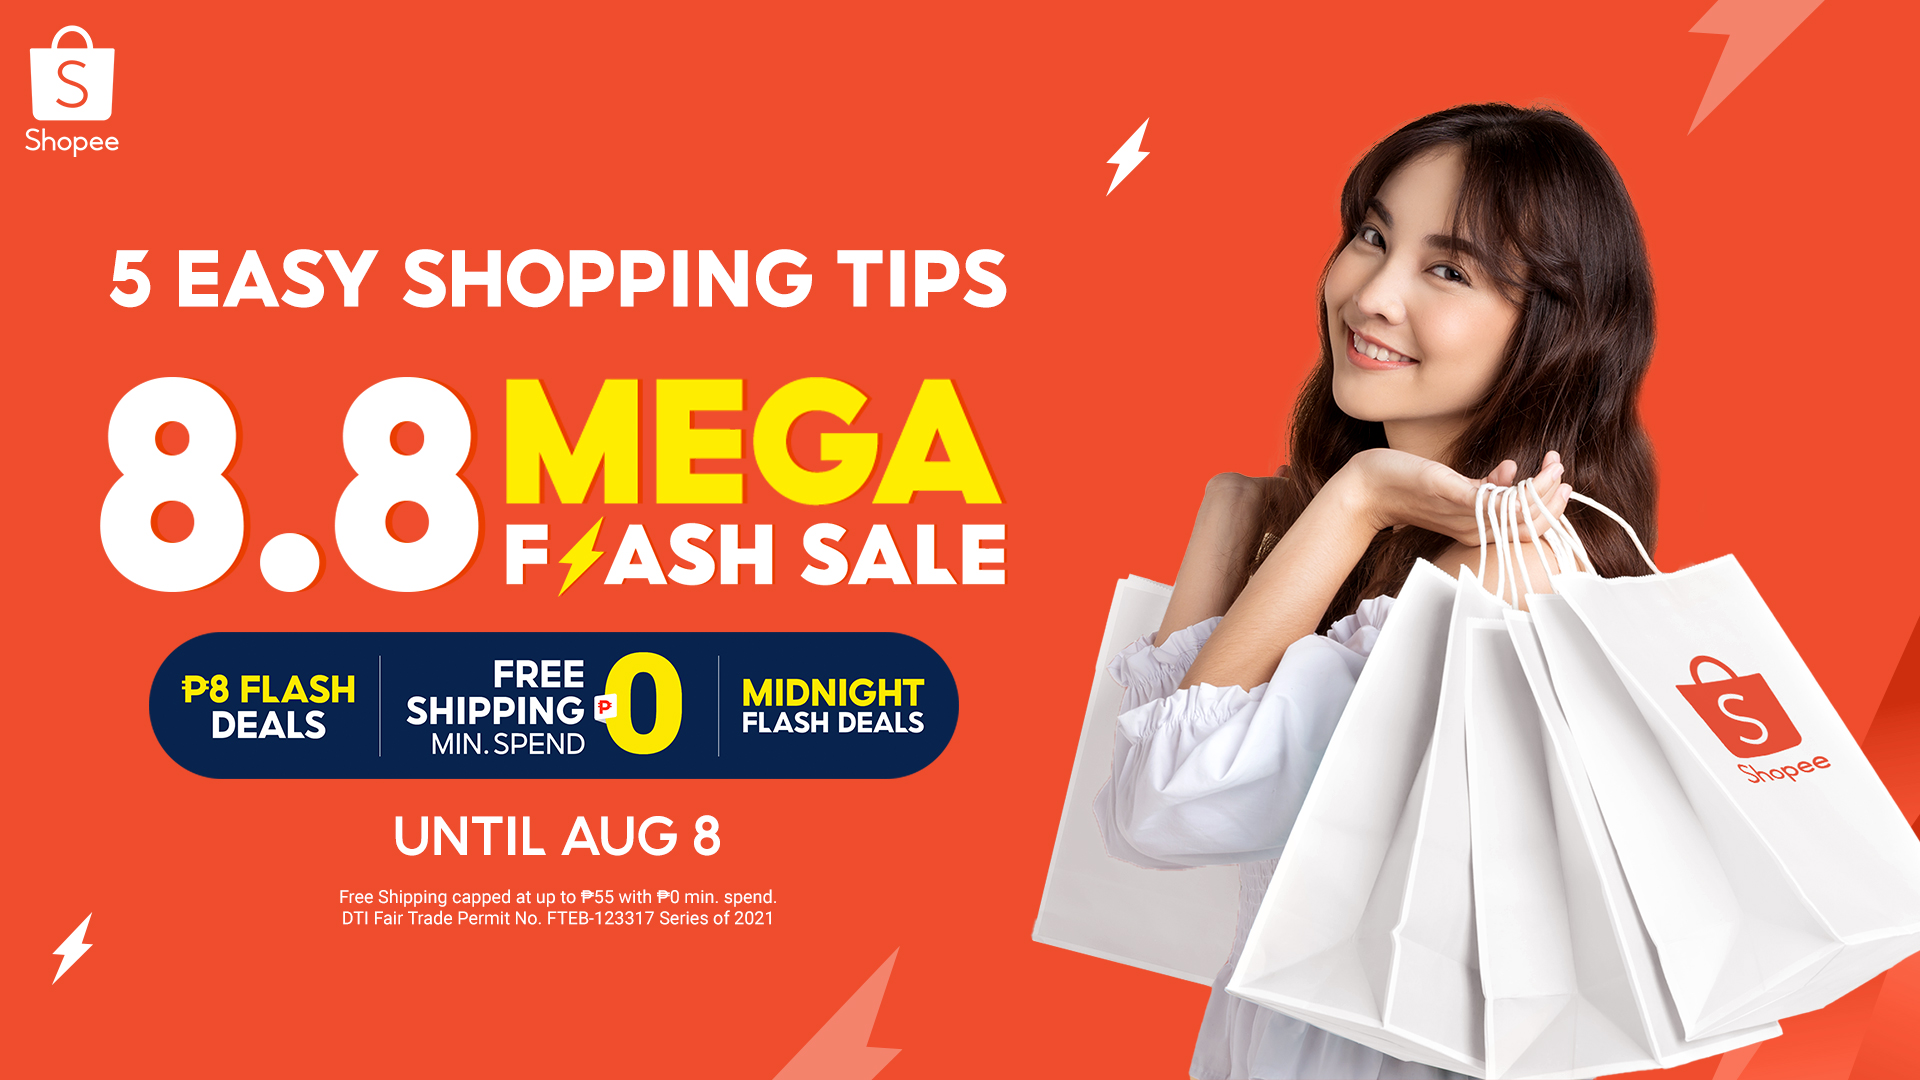 5 Easy tips to help you shop wisely at the Shopee 8.8 Mega Flash Sale